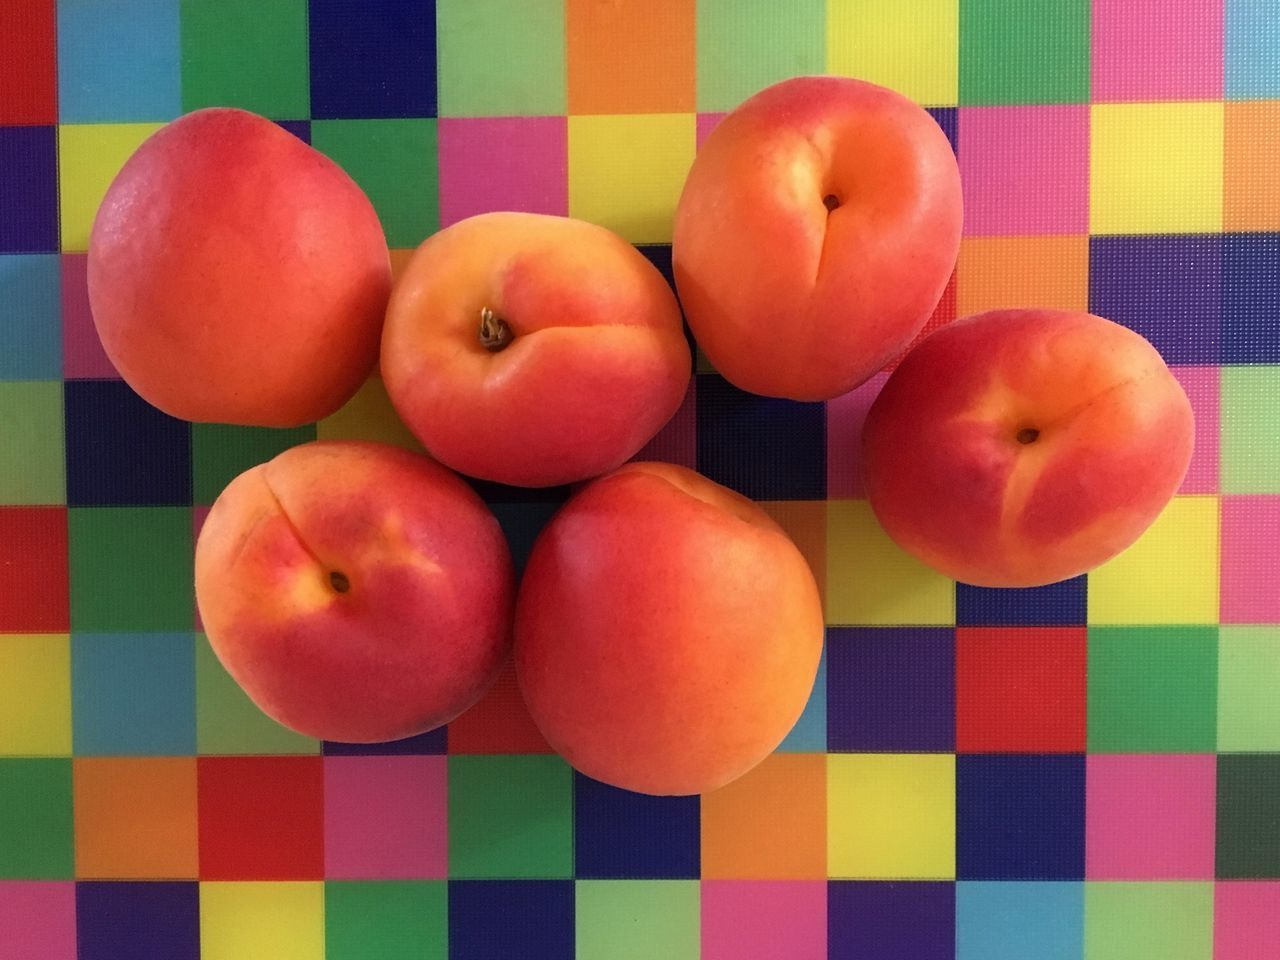 gimme more more more! Apricot Apricots Bright Colors Close-up Colorful Colors Food Freshness Fruit Fruitporn Fruits Healthy Eating Multi Colored Multi Coloured Orange Color Still Life Summertime